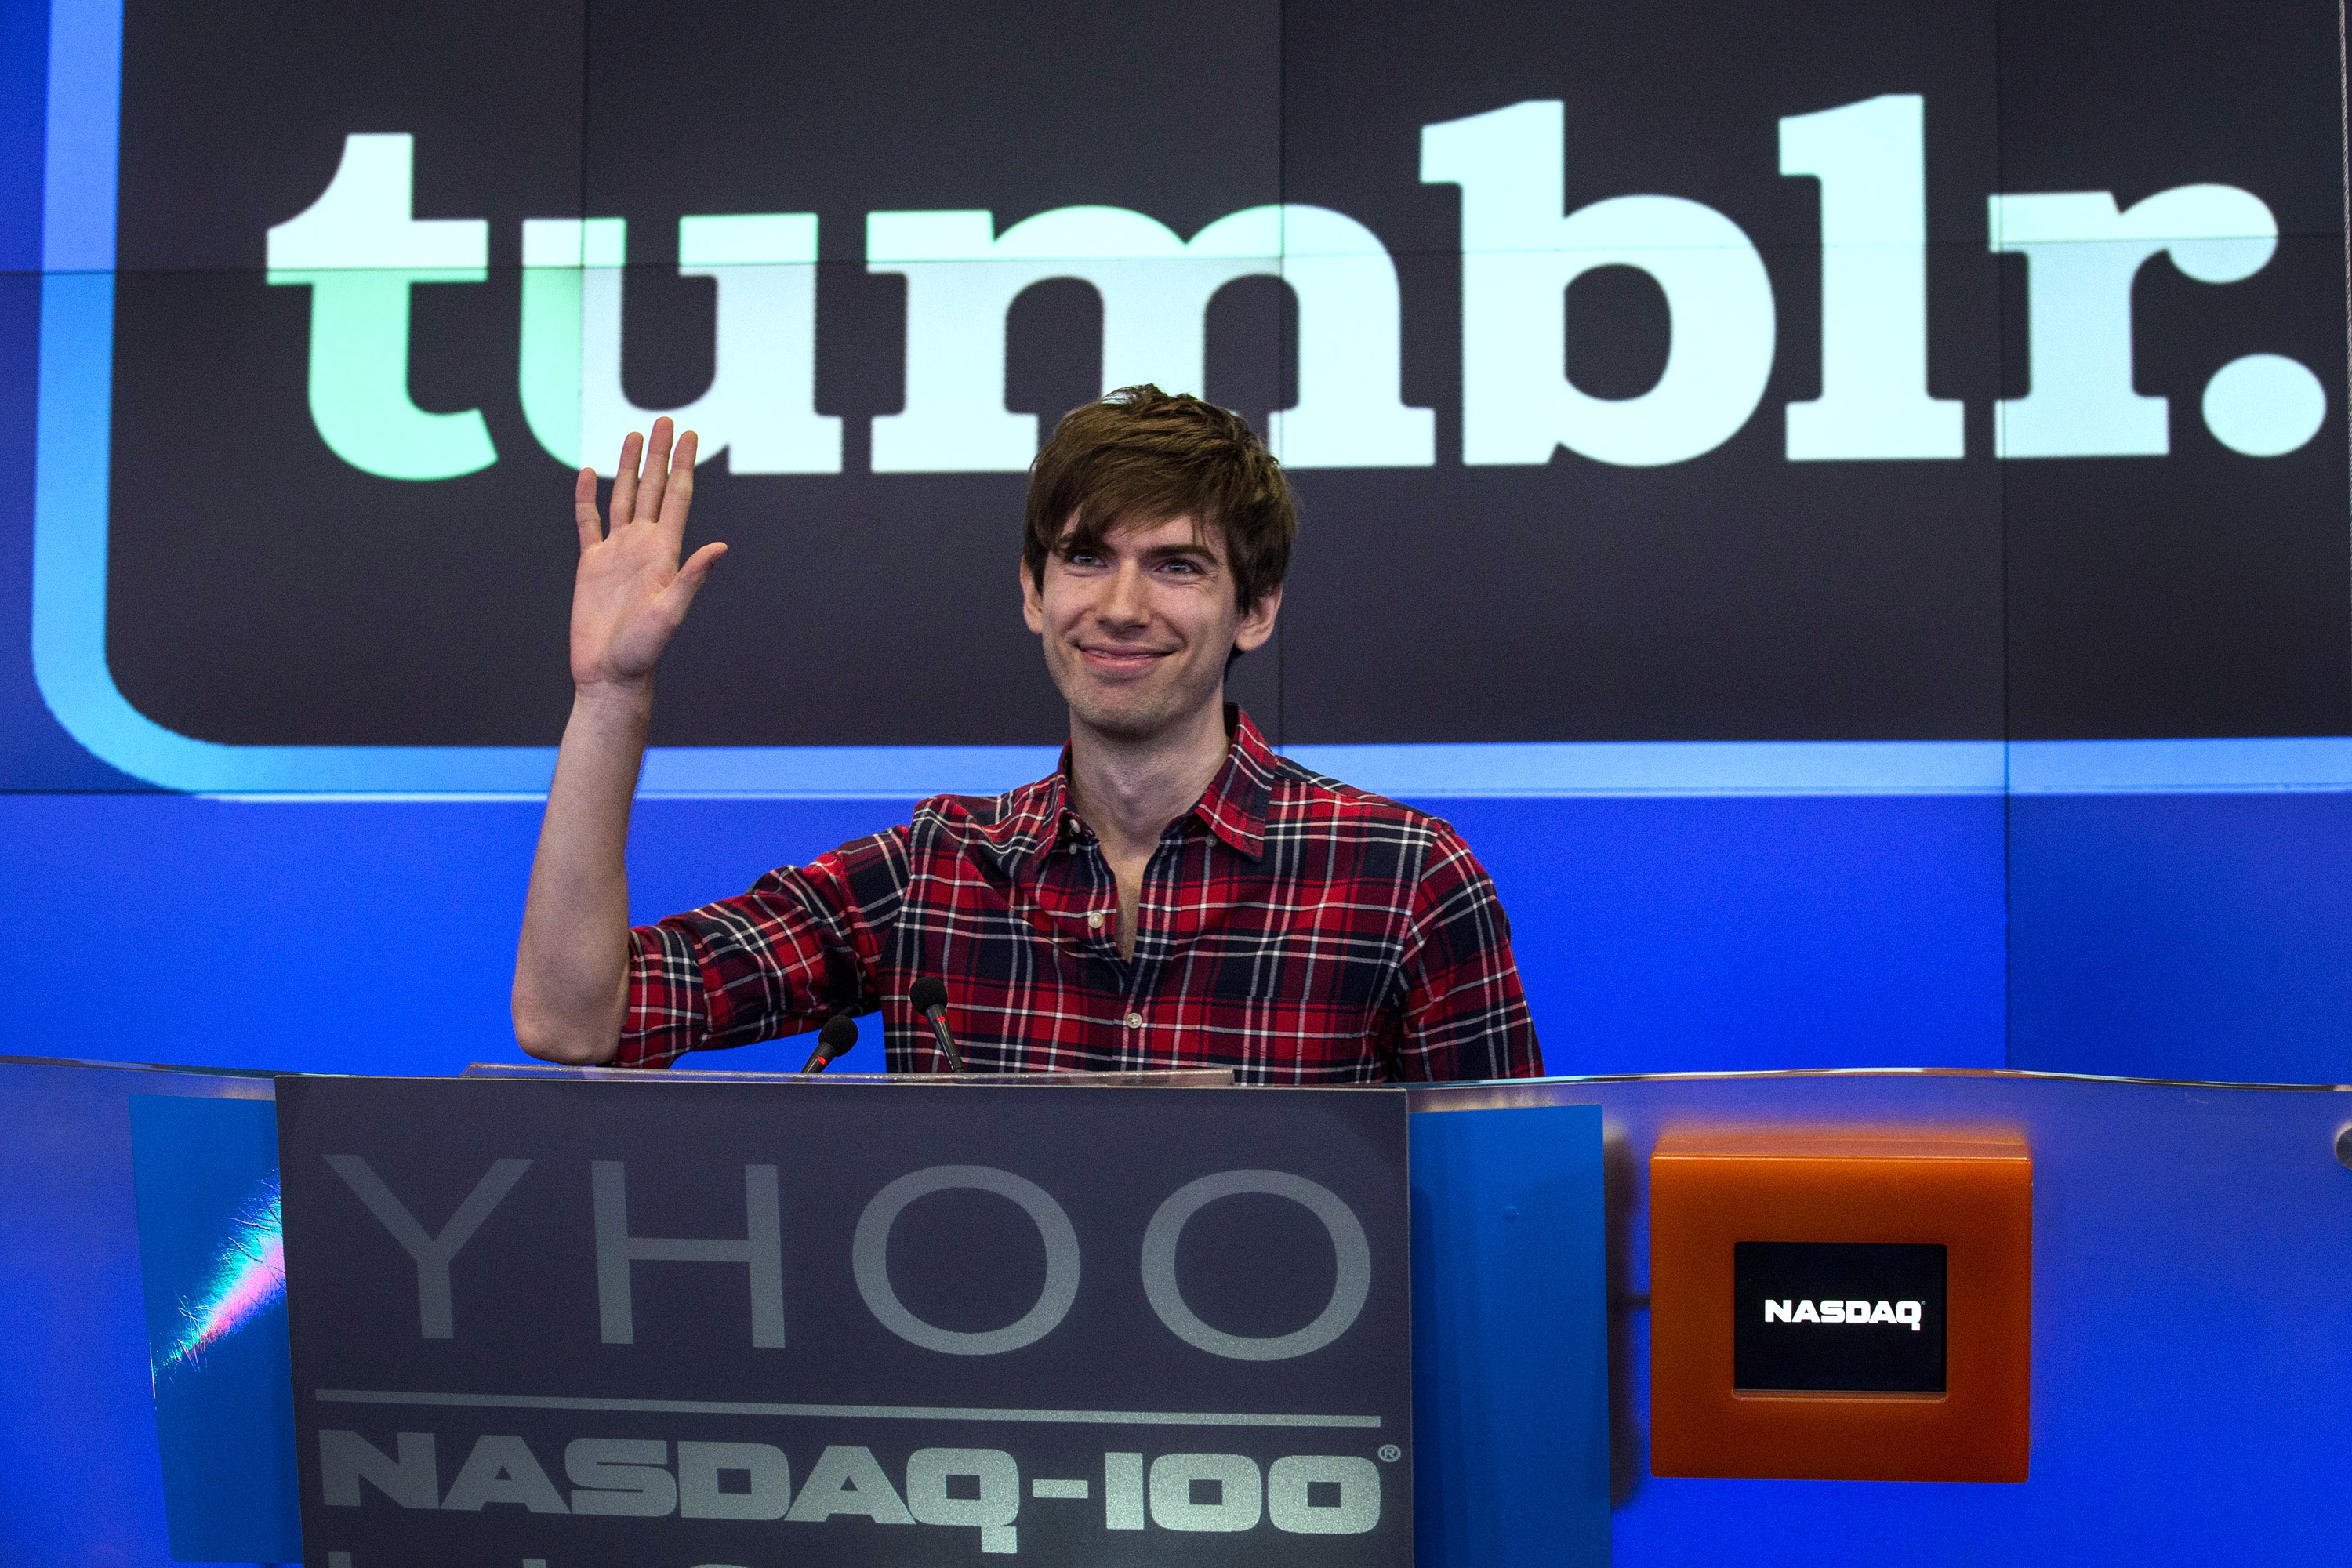 NEW YORK, NY - JULY 11:  David Karp, founder of the micro-blogging site Tumblr, opens the NASCAQ Exchange on July 11, 2013 in New York City. Tumblr was bought by Yahoo! for $1 billion in May; Karp is estimated to be worth $200 million. Verizon is reported to be selling Tumblr to Automattic, owner of Wordpress, at a reported bargain-basement price tag of under $20 million. (Photo by Andrew Burton/Getty Images)